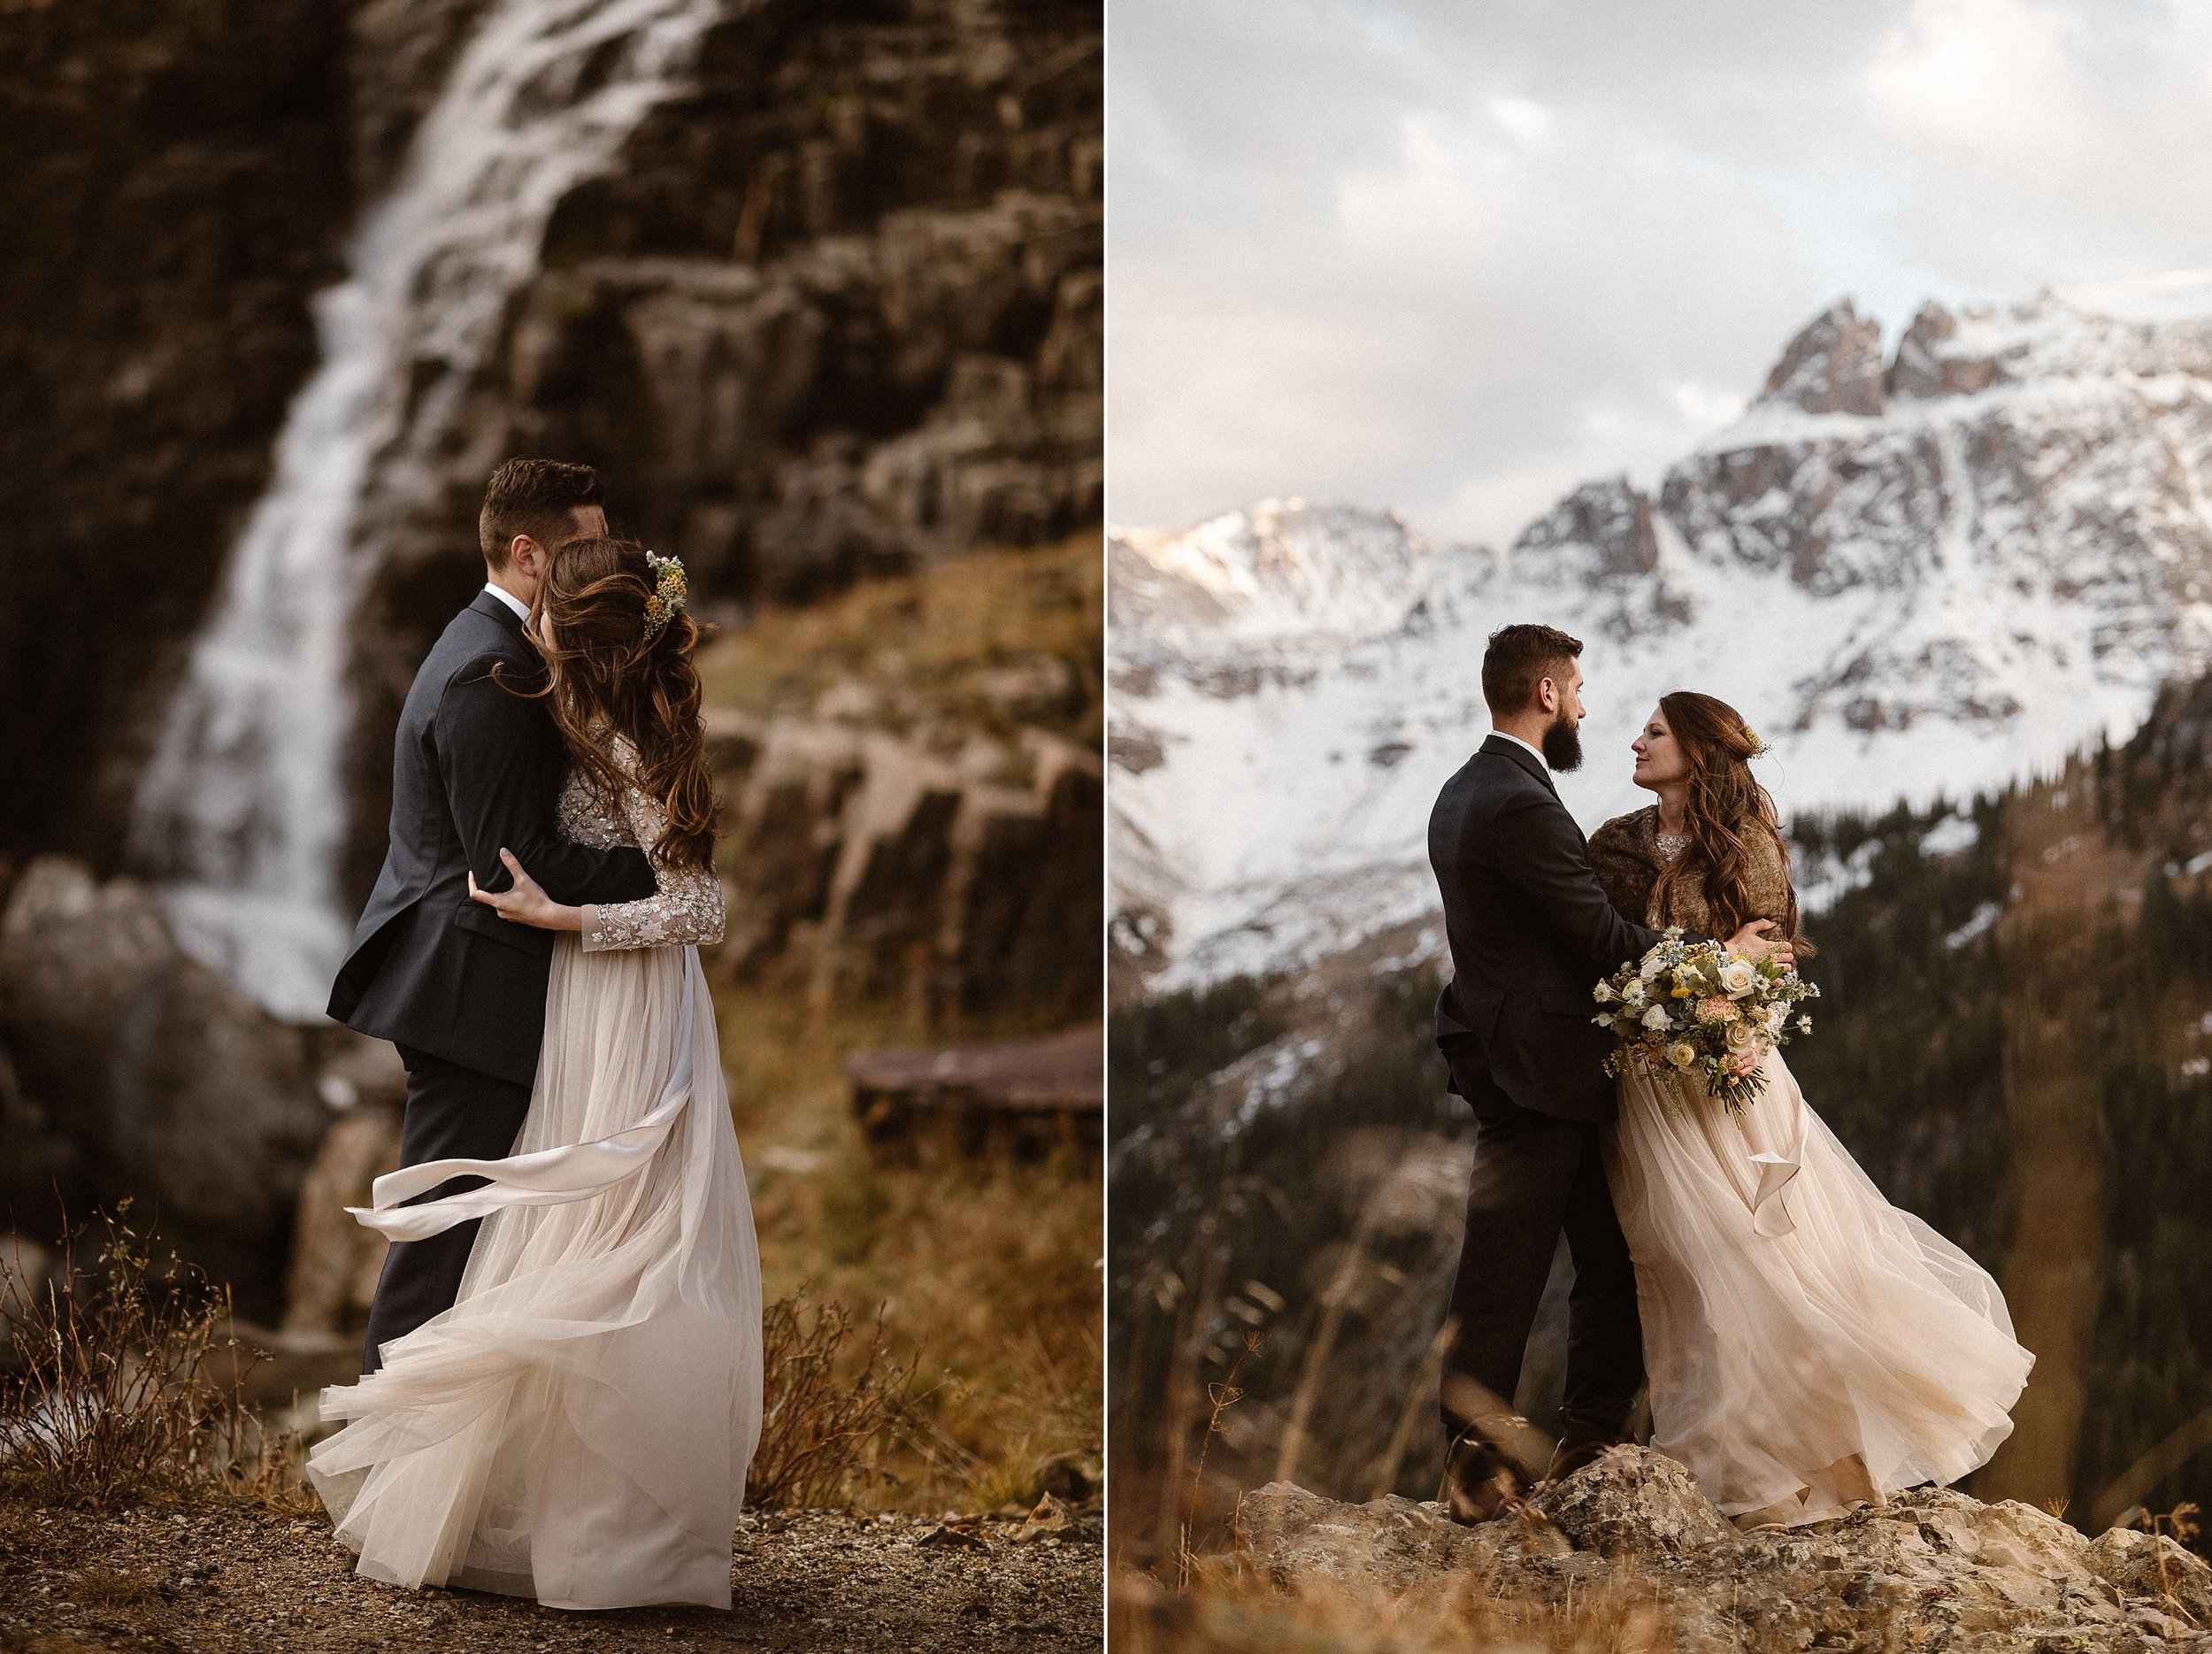 Pausing for one more embrace before they continued hiking on, the high alpine winds of the San Juan Mountains kicked up grabbing the tulle of Jen's dress sending it dancing behind her. She and her mountain loving groom eloped in Yankee Boy Basin with only their traveling elopement photographer Maddie Mae with them to capture each romantic moment.